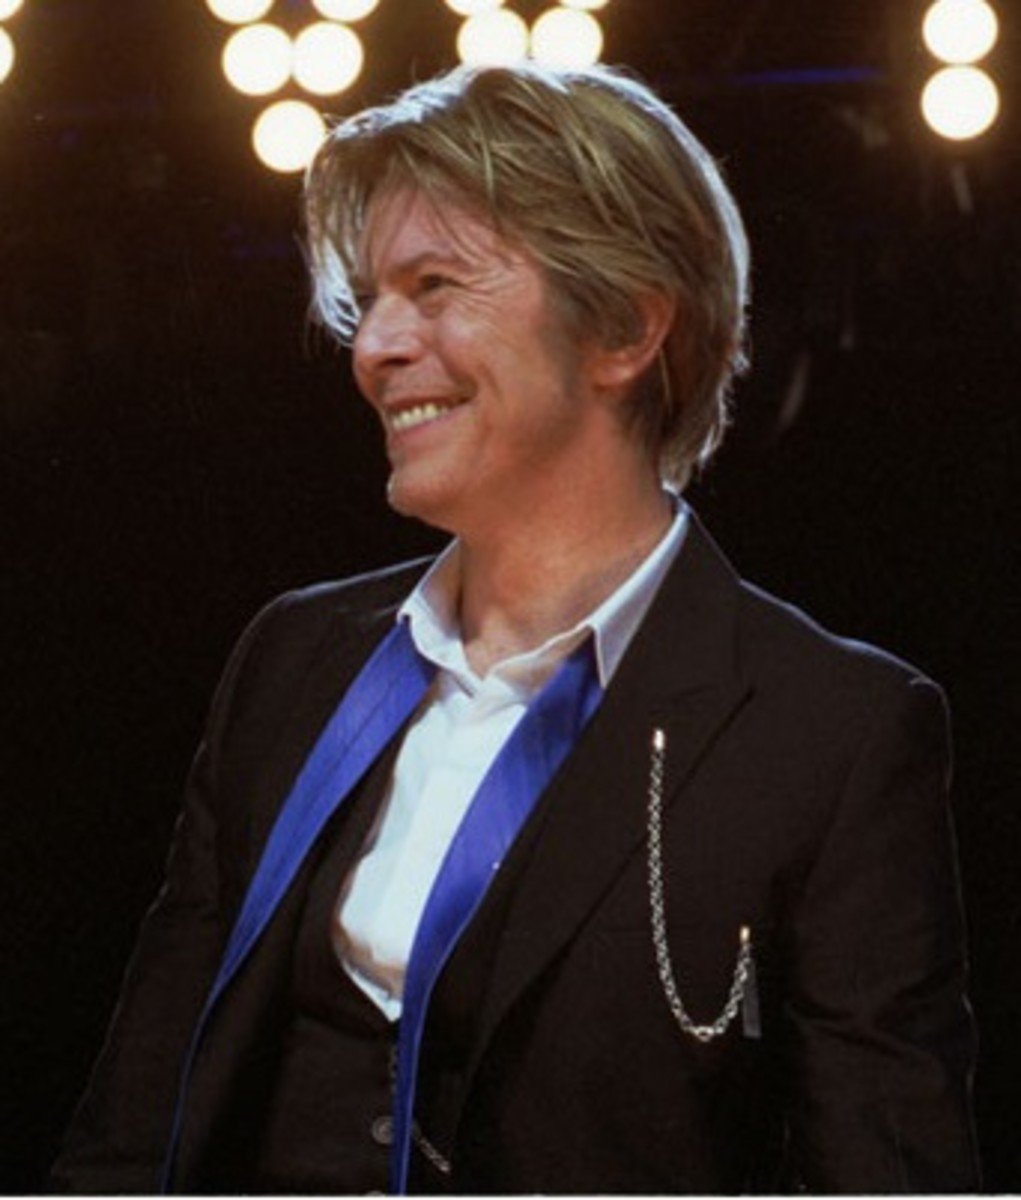 Bowie the singer, song-writer, actor.......